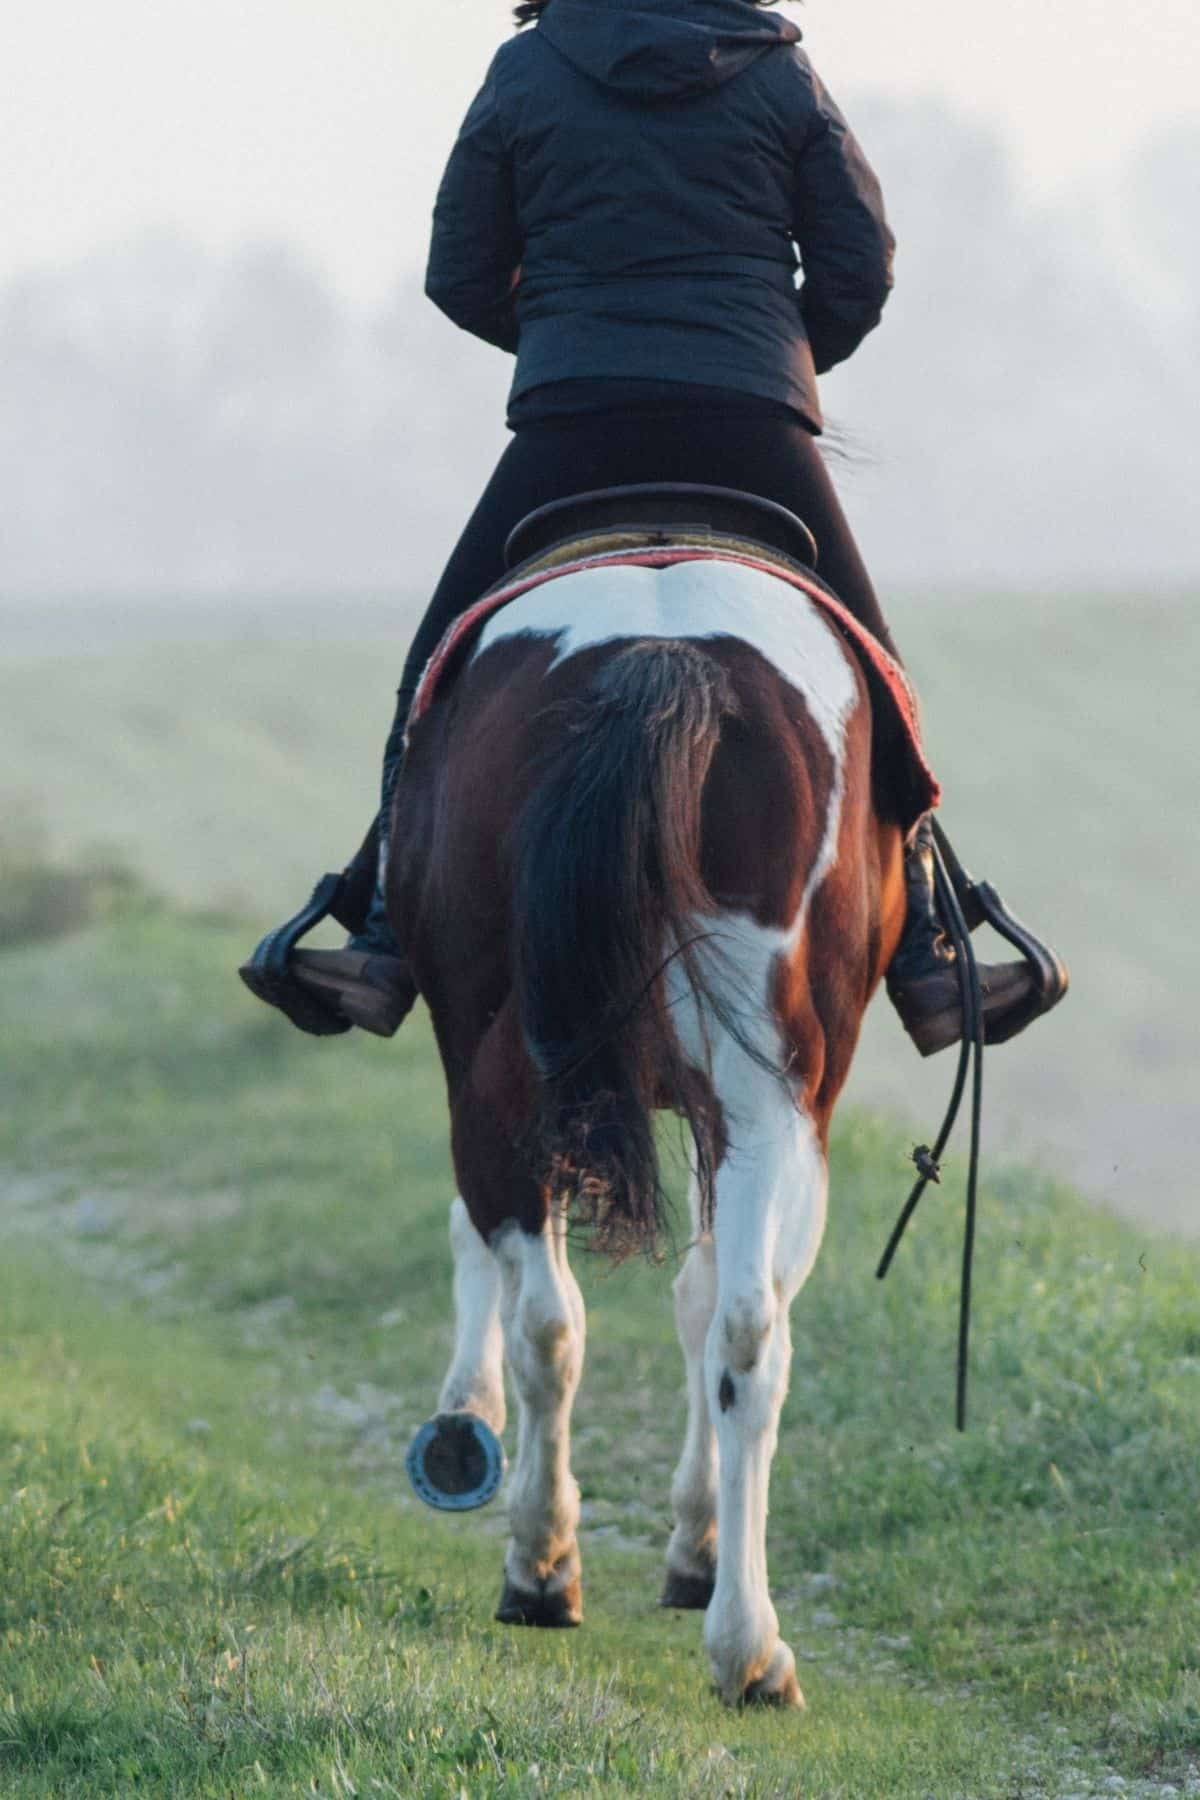 Back of horse with rider in black